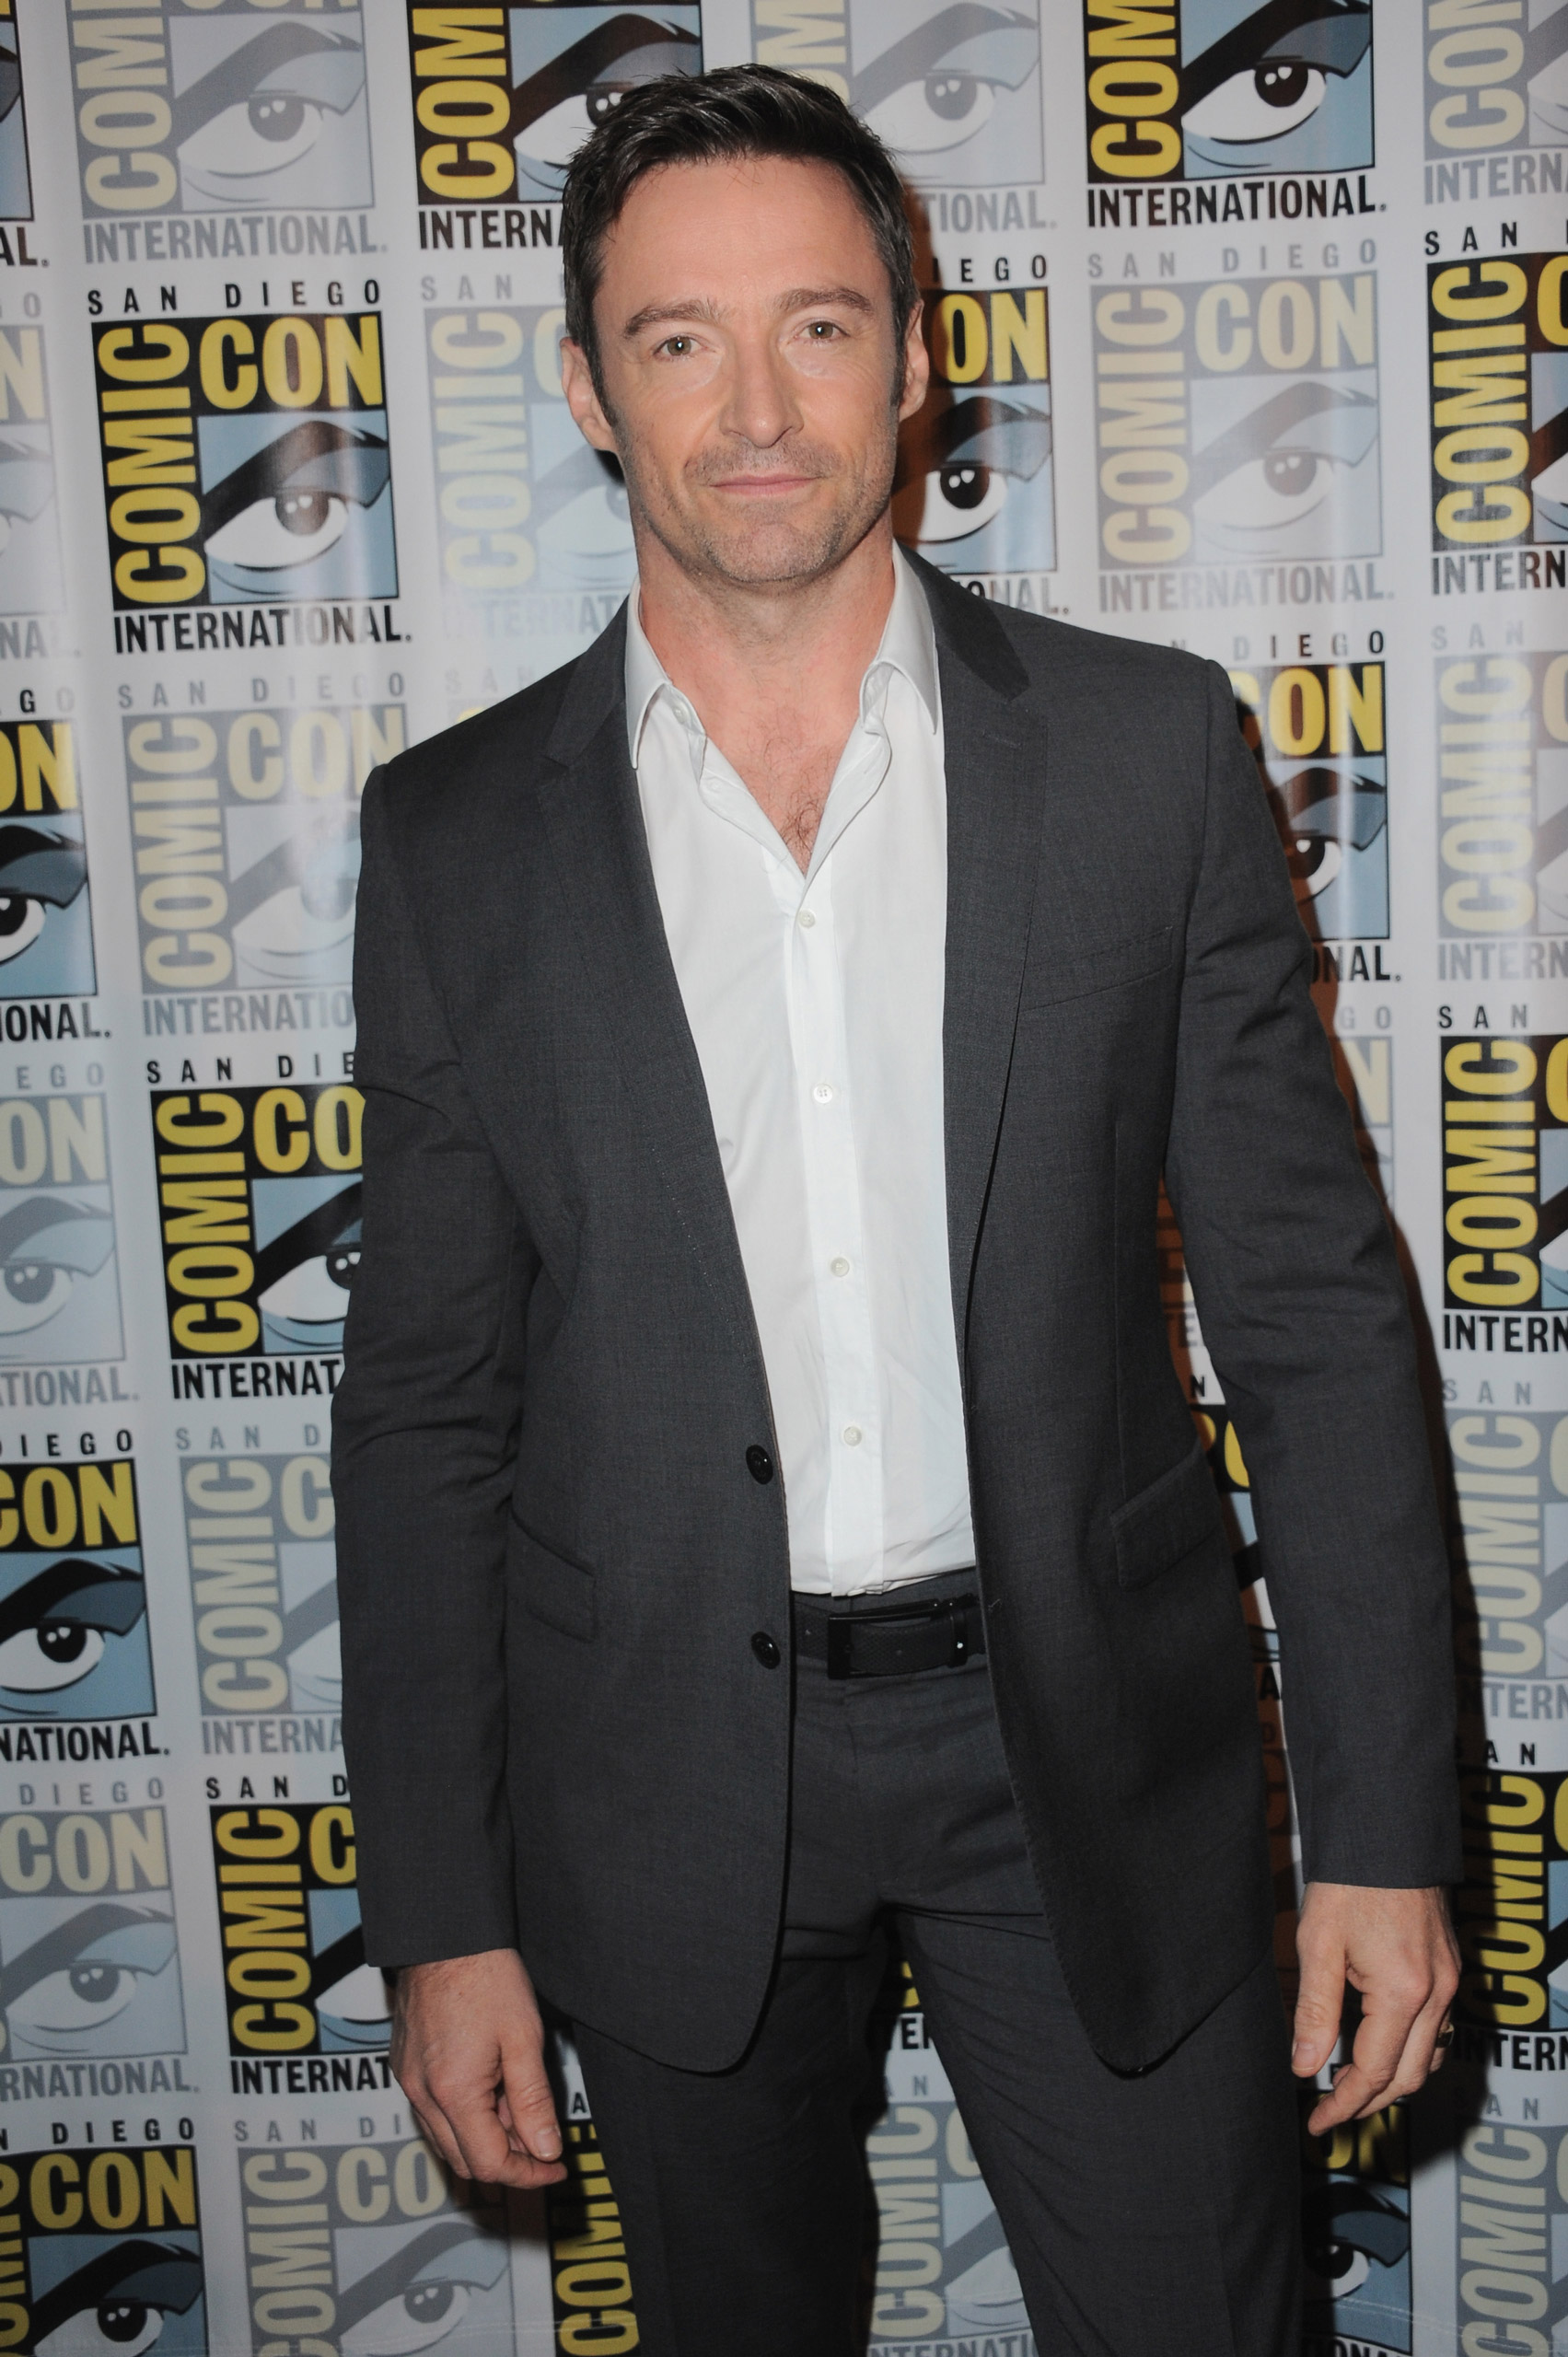 Hugh Jackman attends the Warner Bros. 'Pan' presentation during Comic-Con International 2015 at the San Diego Convention Center in San Diego on July 11, 2015.